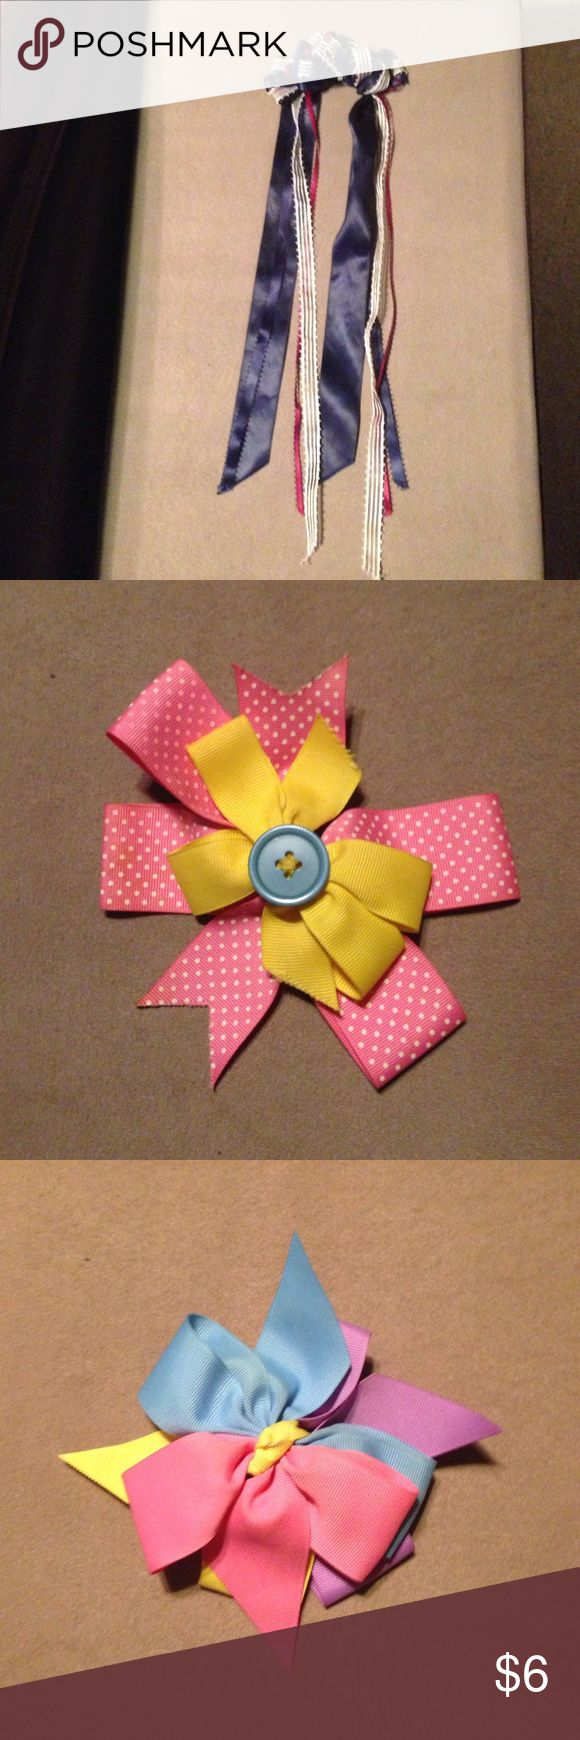 Handmade Burgundy, navy & ivory ribboned hair bow - 1 ; pink polka dot, yellow and teal buttoned hair bow - 1 ; purple, blue, yellow & pink ridged ribbon hair clip - 1 ; red apple and watermelon ceramic & adorned hair clip - 1 Accessories Hair Accessories